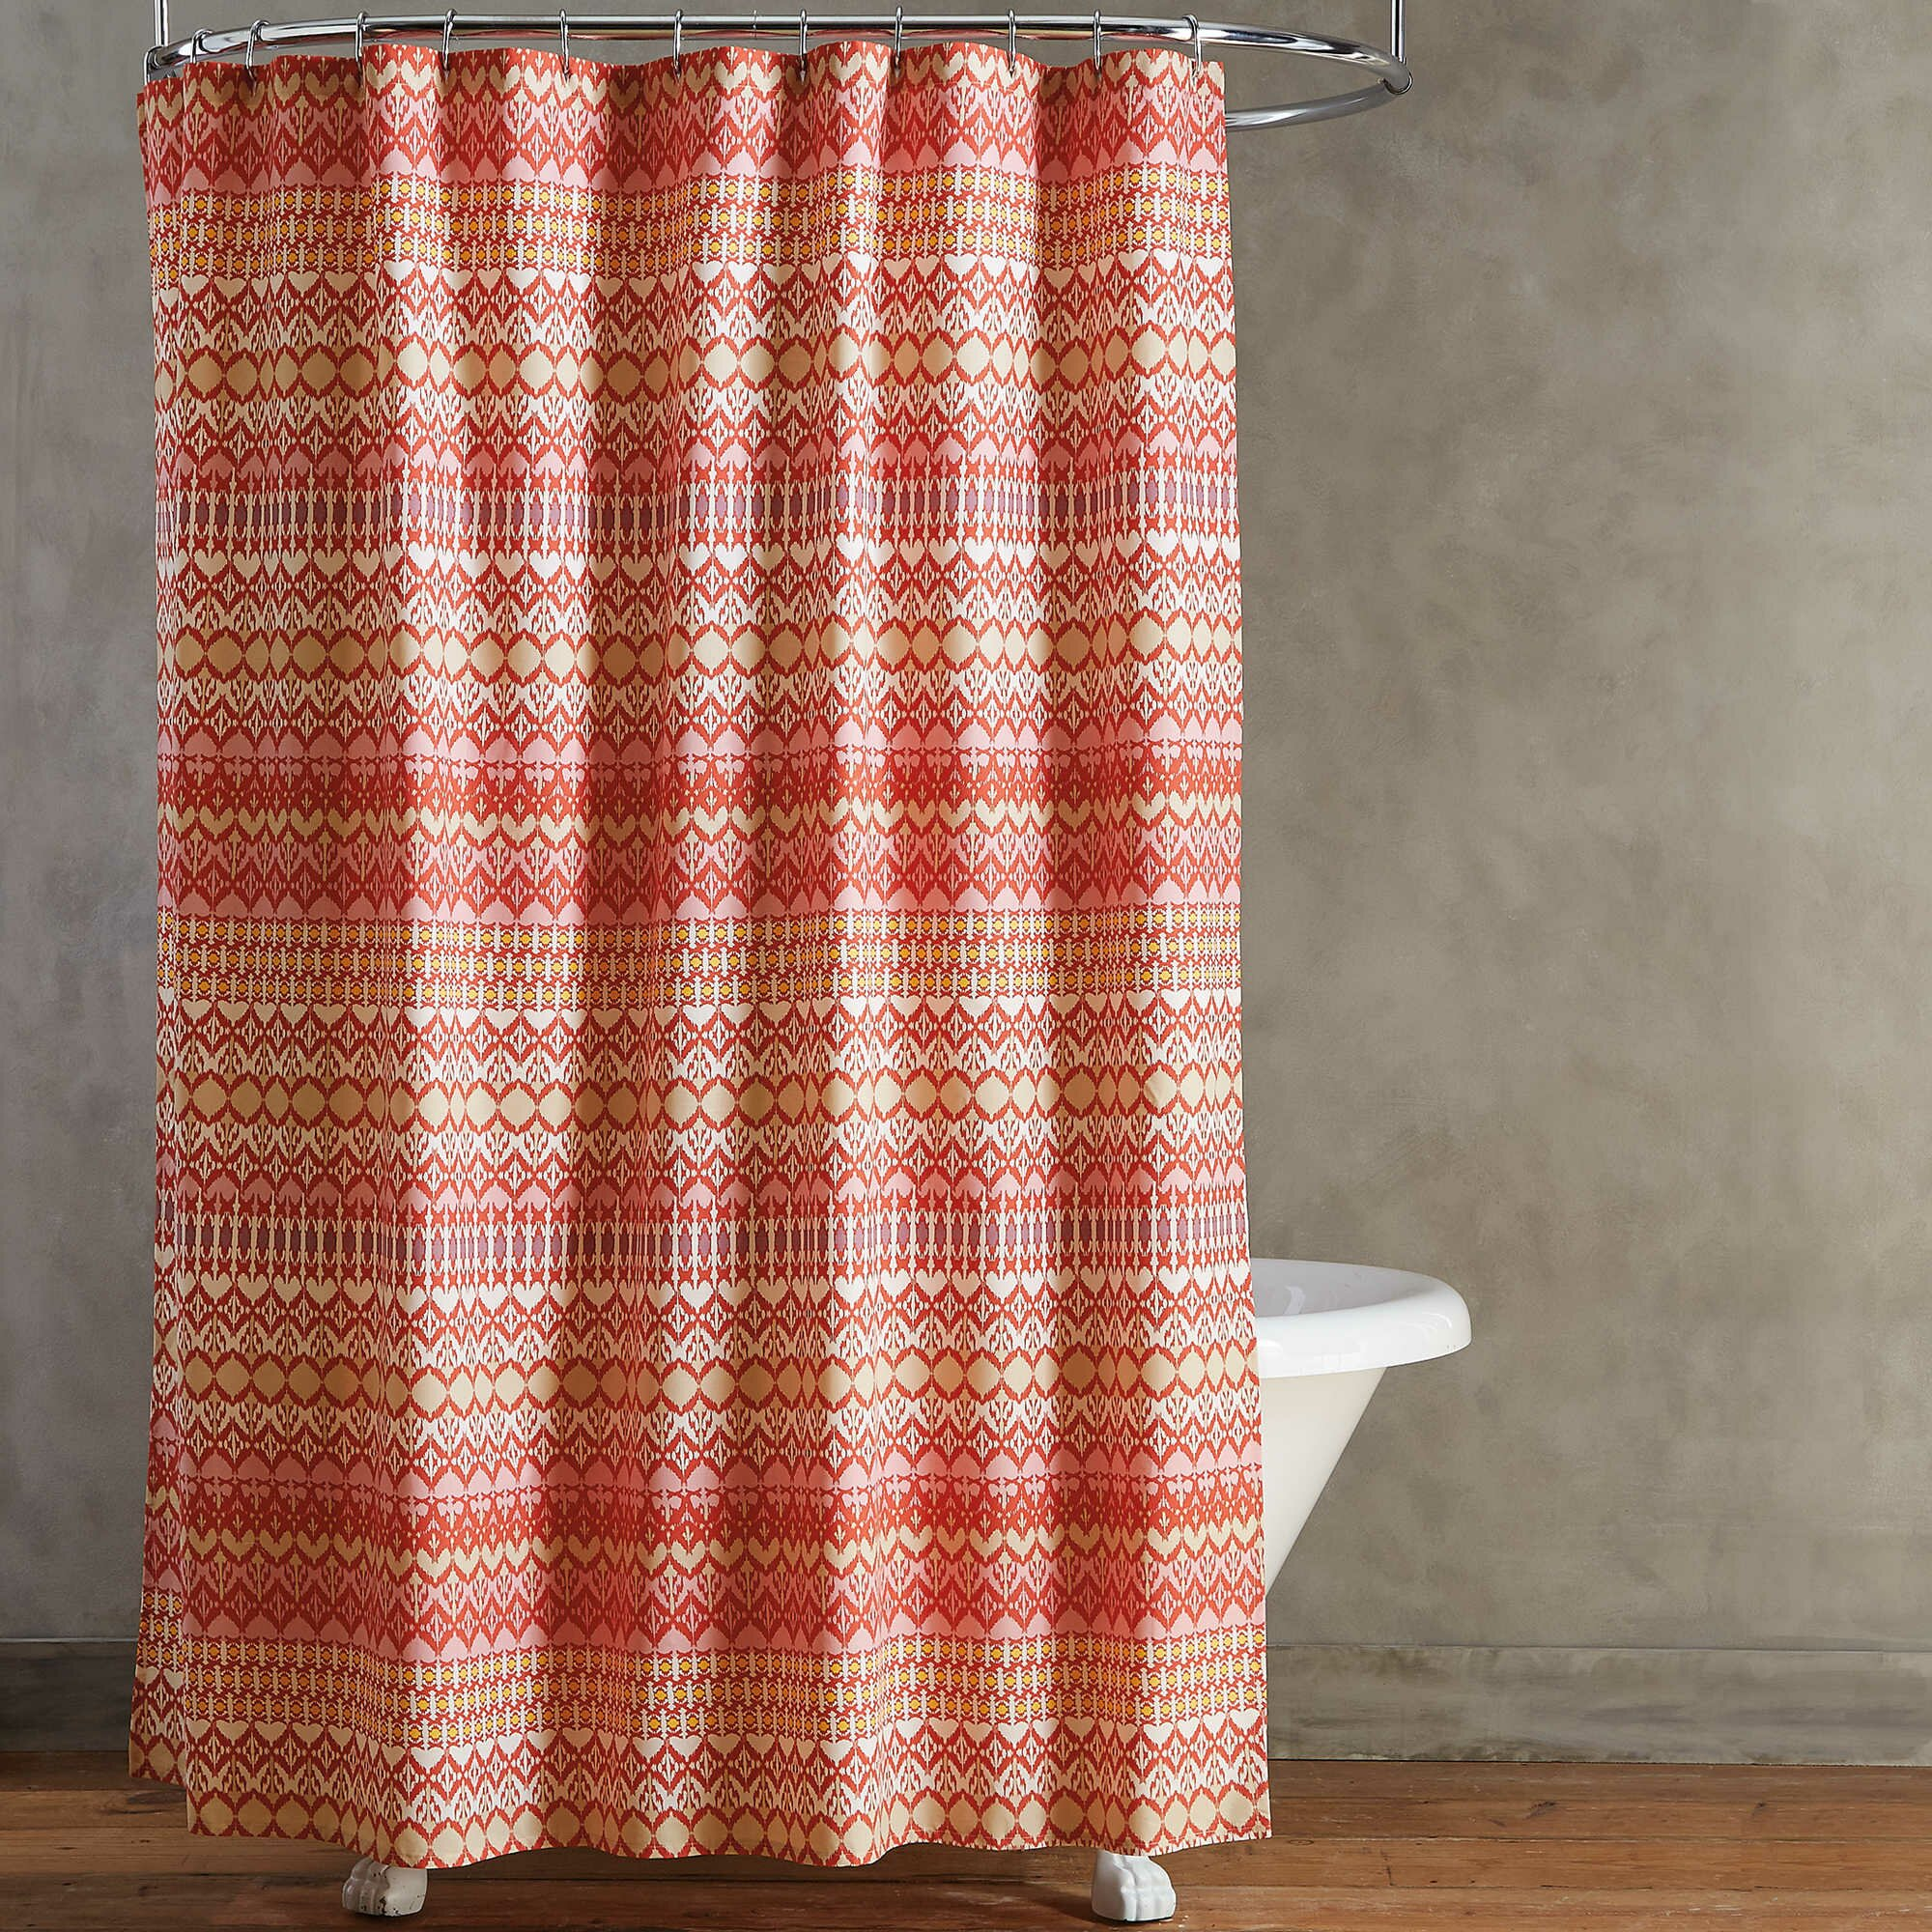 Curtain: Cheap Cloth Shower Curtains